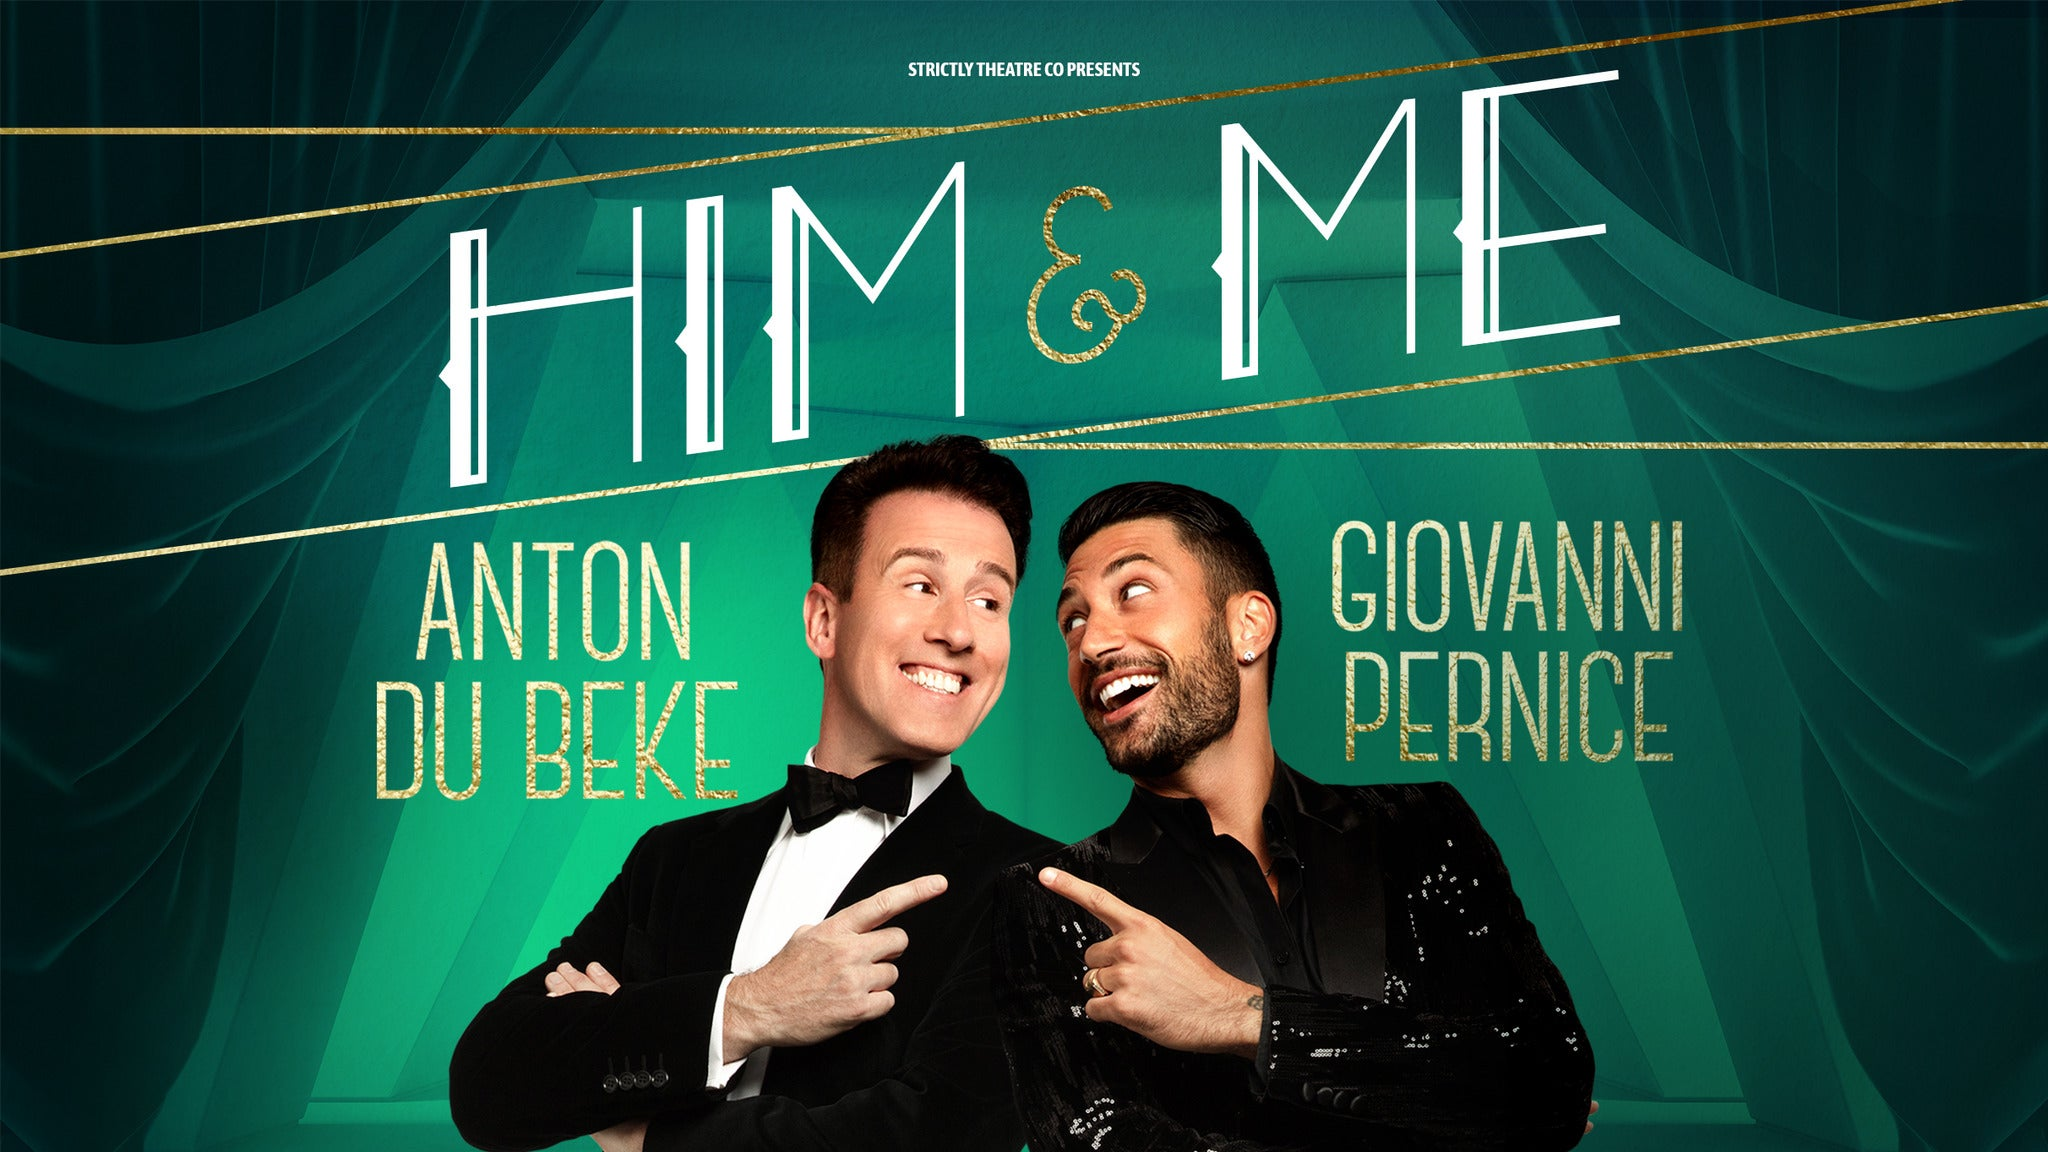 Anton and Giovanni - Him and Me tickets (Copyright © Ticketmaster)